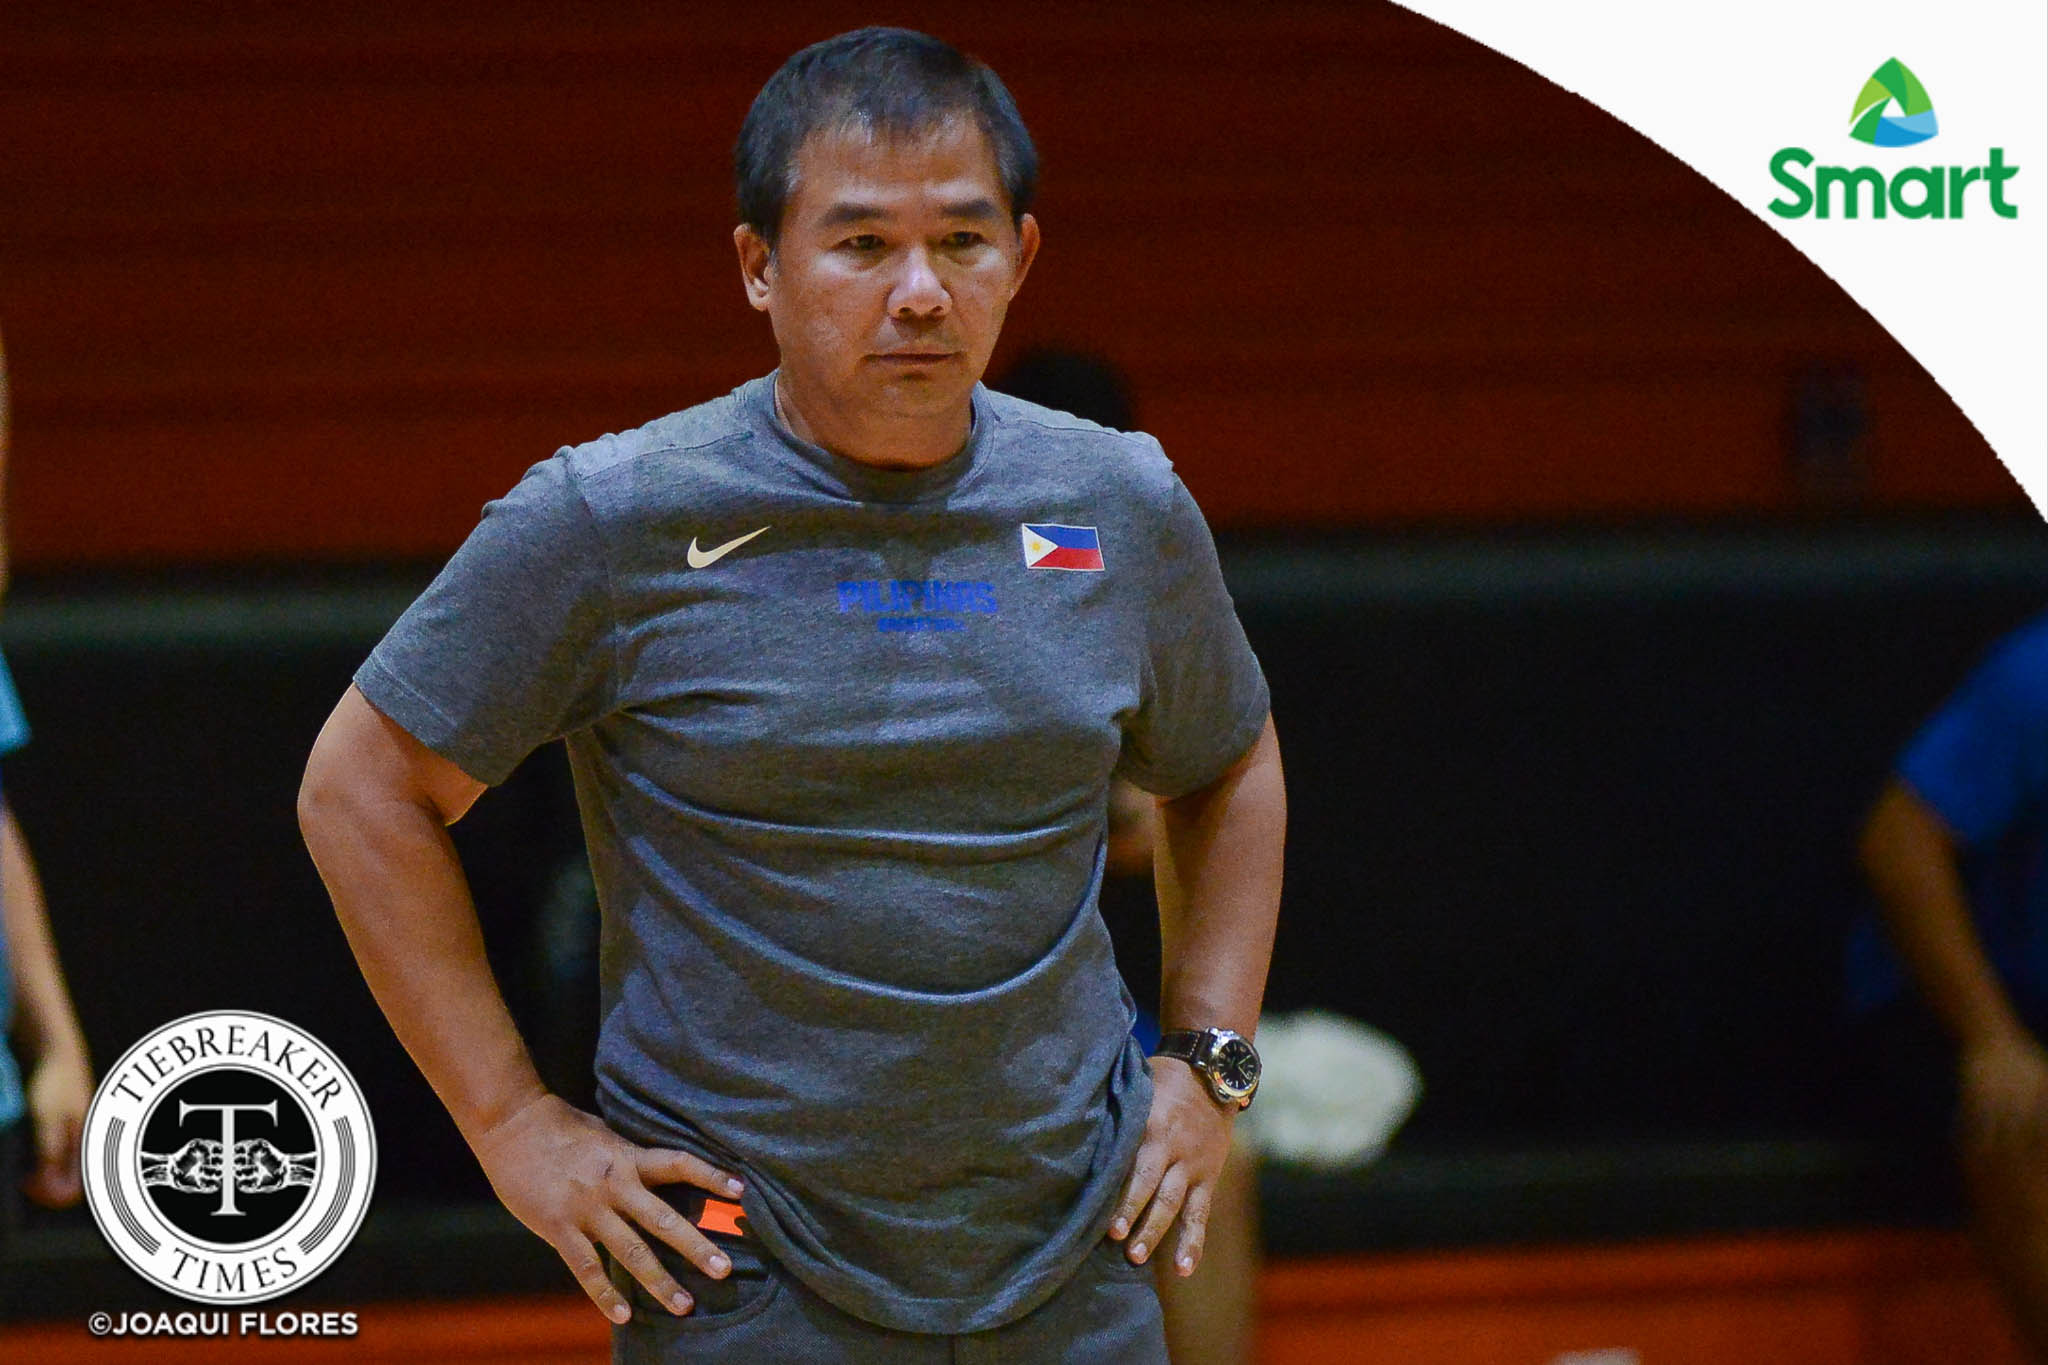 Philippine Sports News - Tiebreaker Times Chot Reyes hopes for understanding as Gilas set to hold private practice 2019 FIBA World Cup Qualifiers Basketball Gilas Pilipinas News  Chot Reyes 2019 FIBA World Cup Qualifers Group B